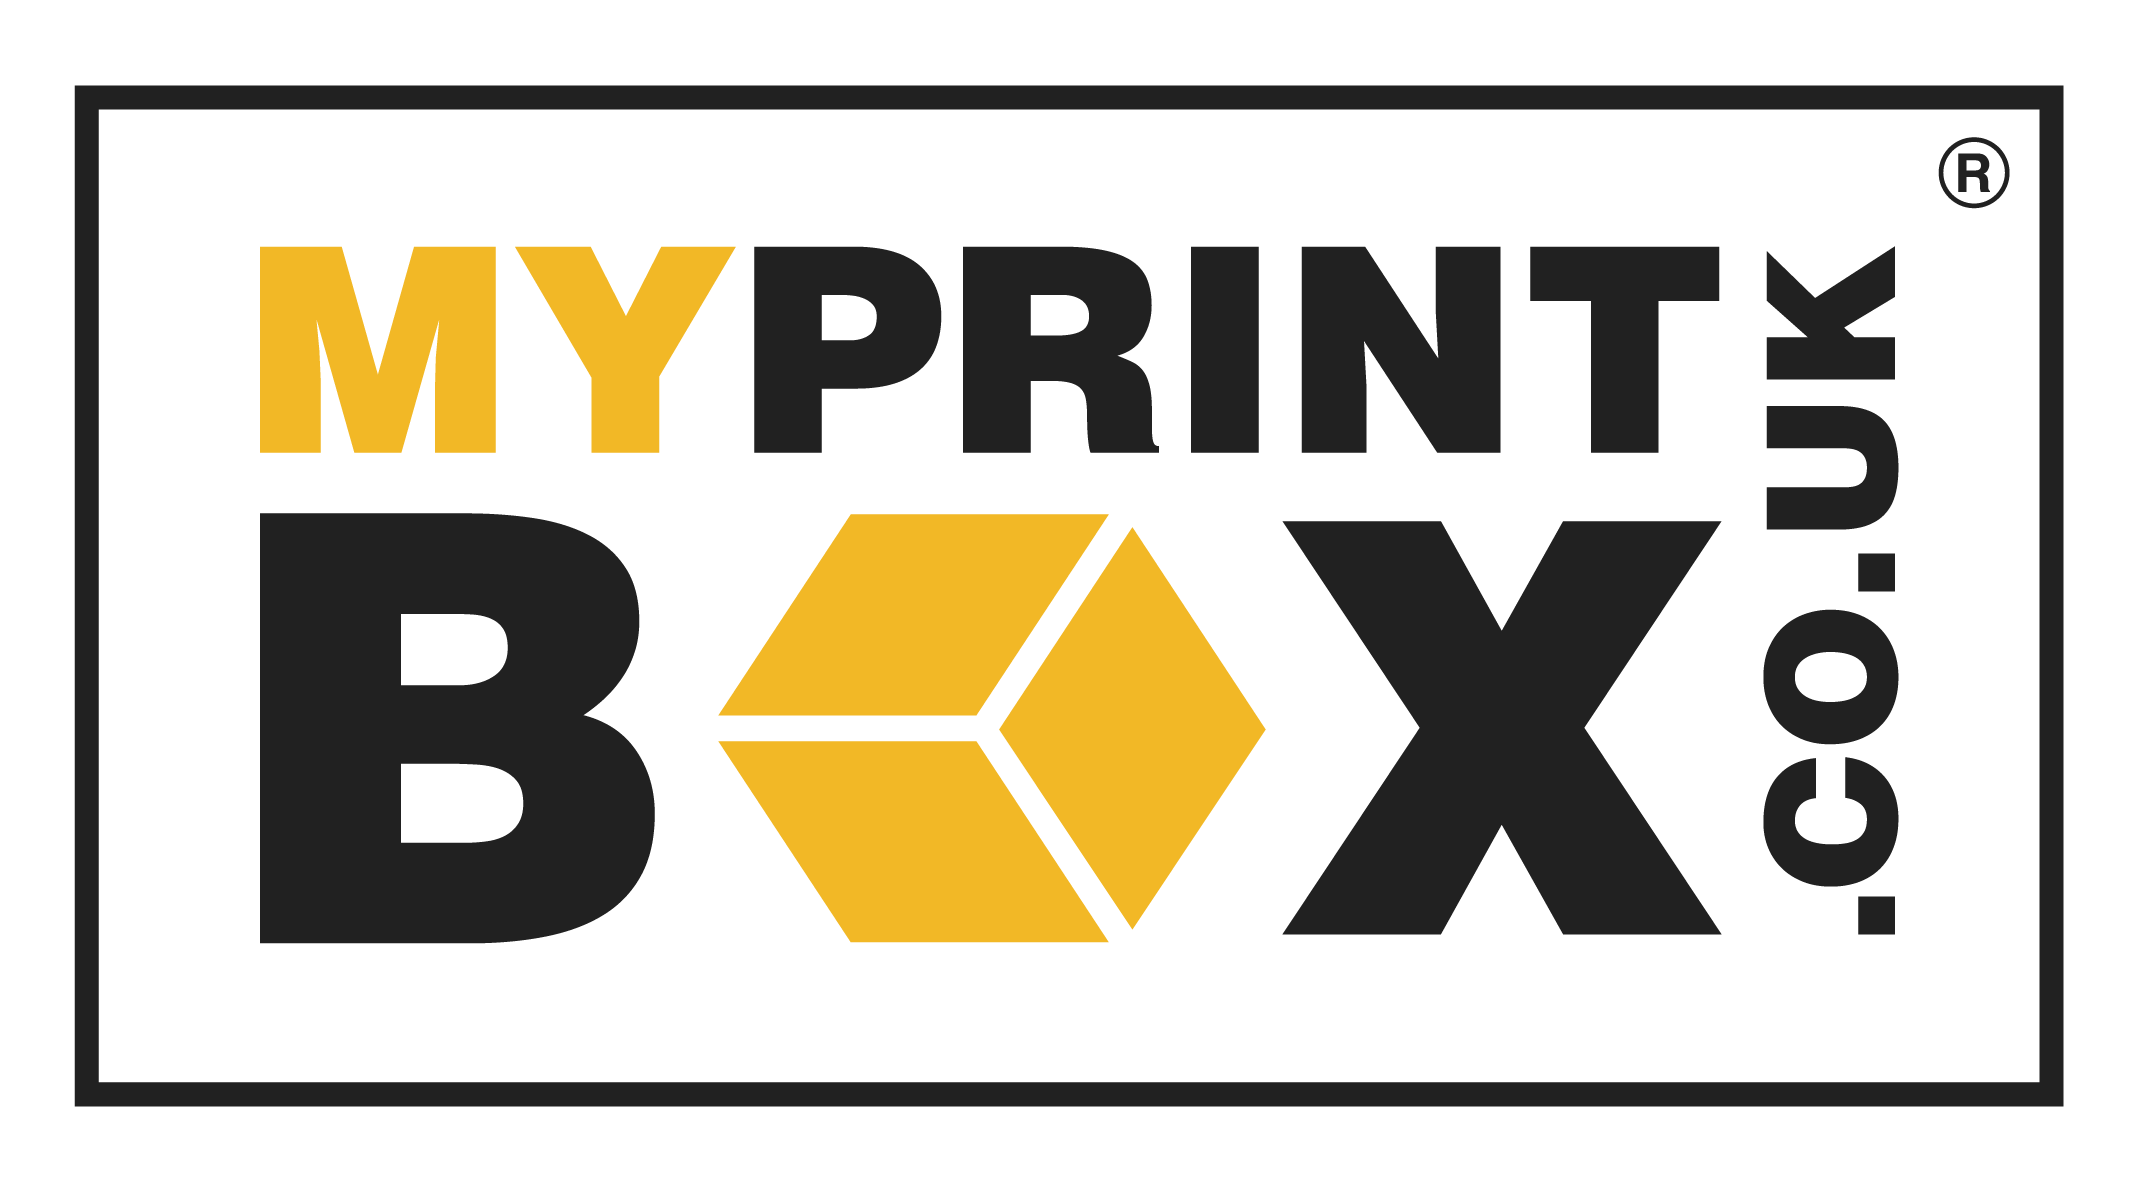 myprintbox